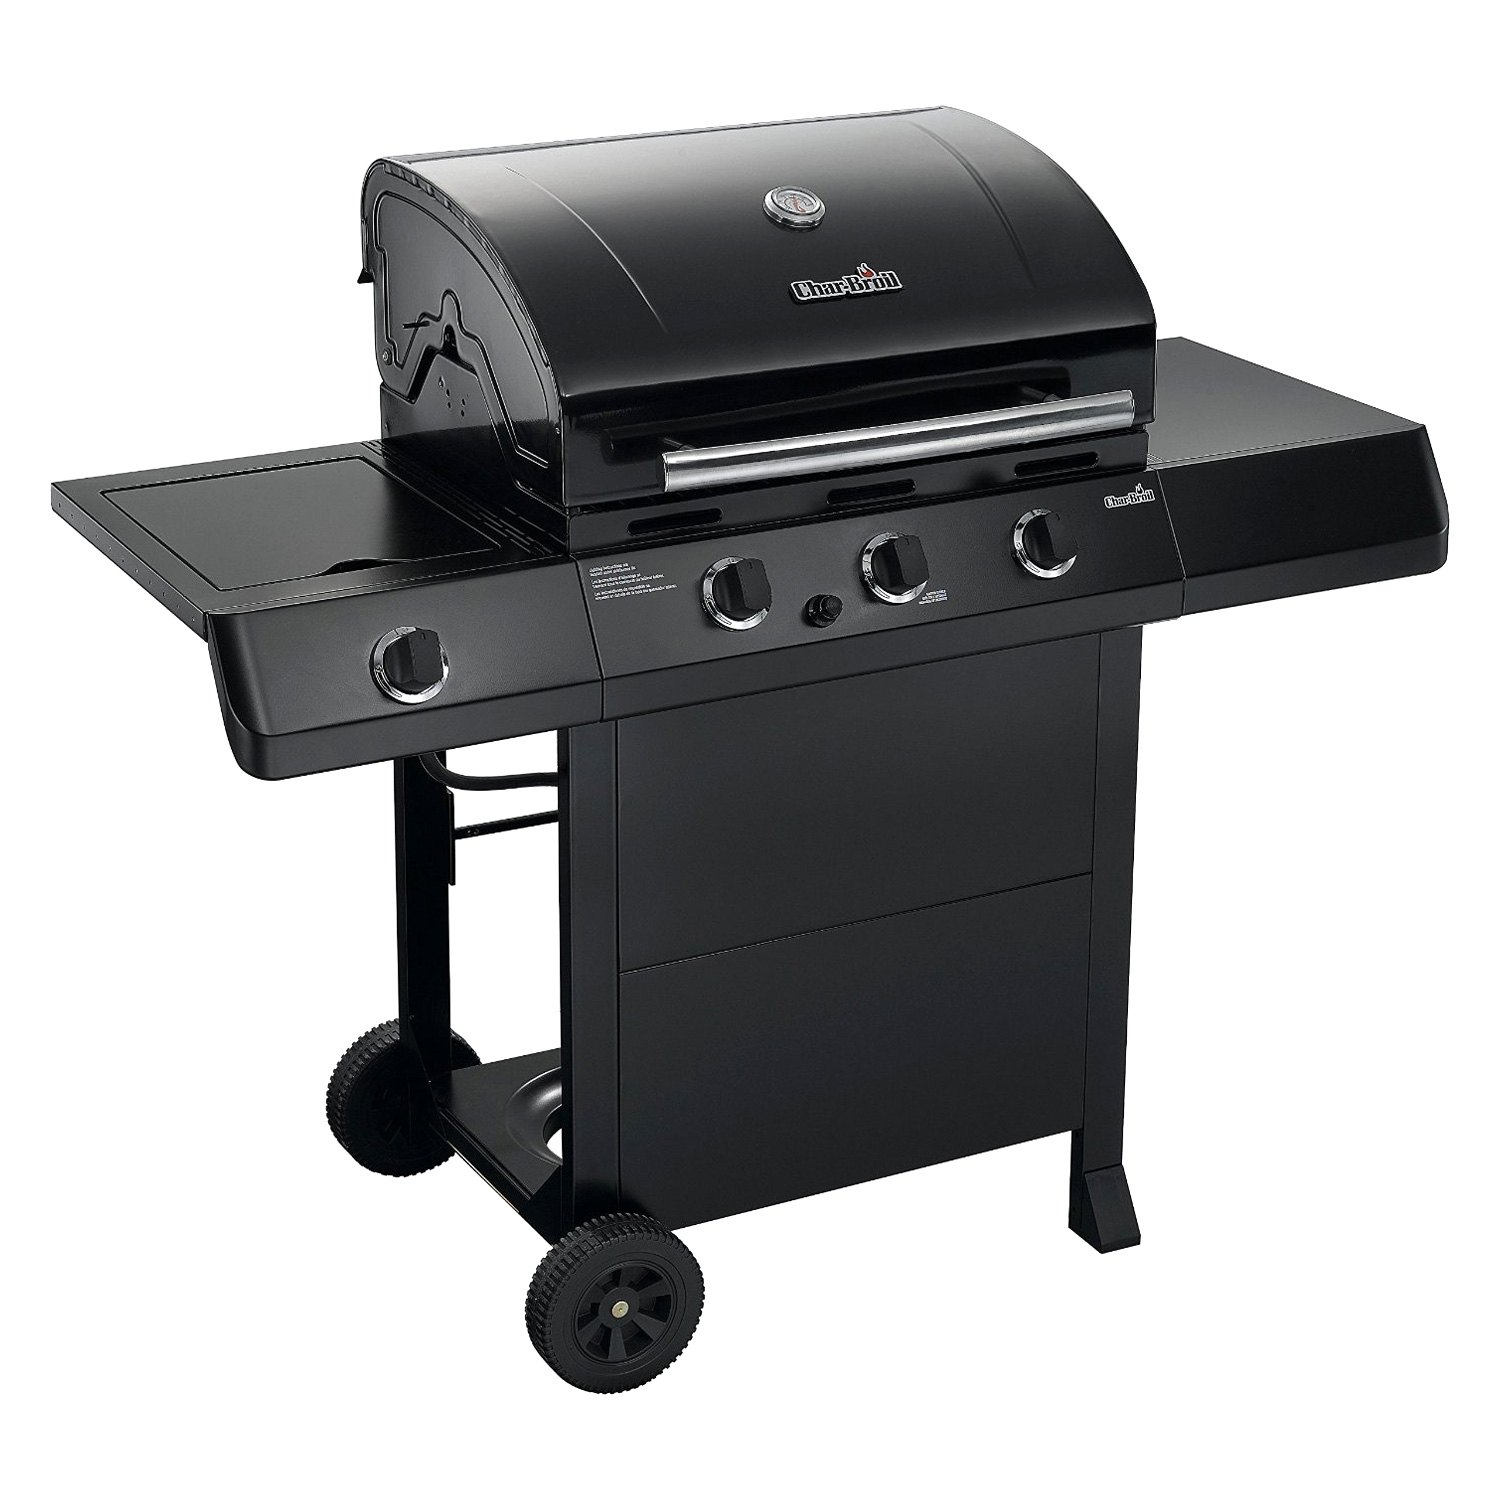 char broil 463334614 classic 3 burner gas grill with sideburn. Black Bedroom Furniture Sets. Home Design Ideas